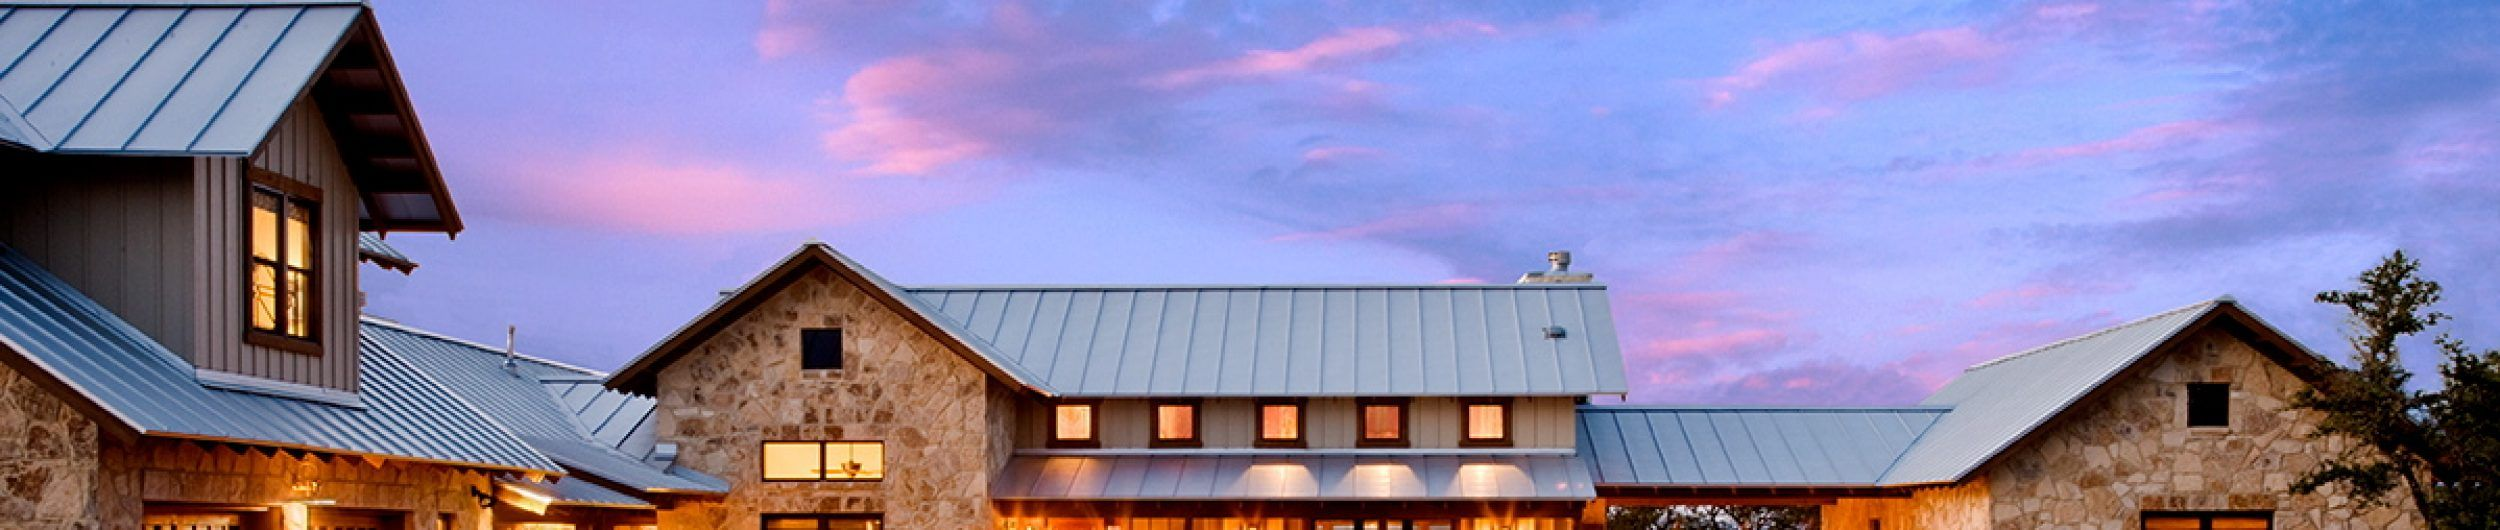 Metalroofing Systems Metal Roofing Systems I Love That Color What Is It Metal Roof Colors Metal Roofing Systems Metal Roof